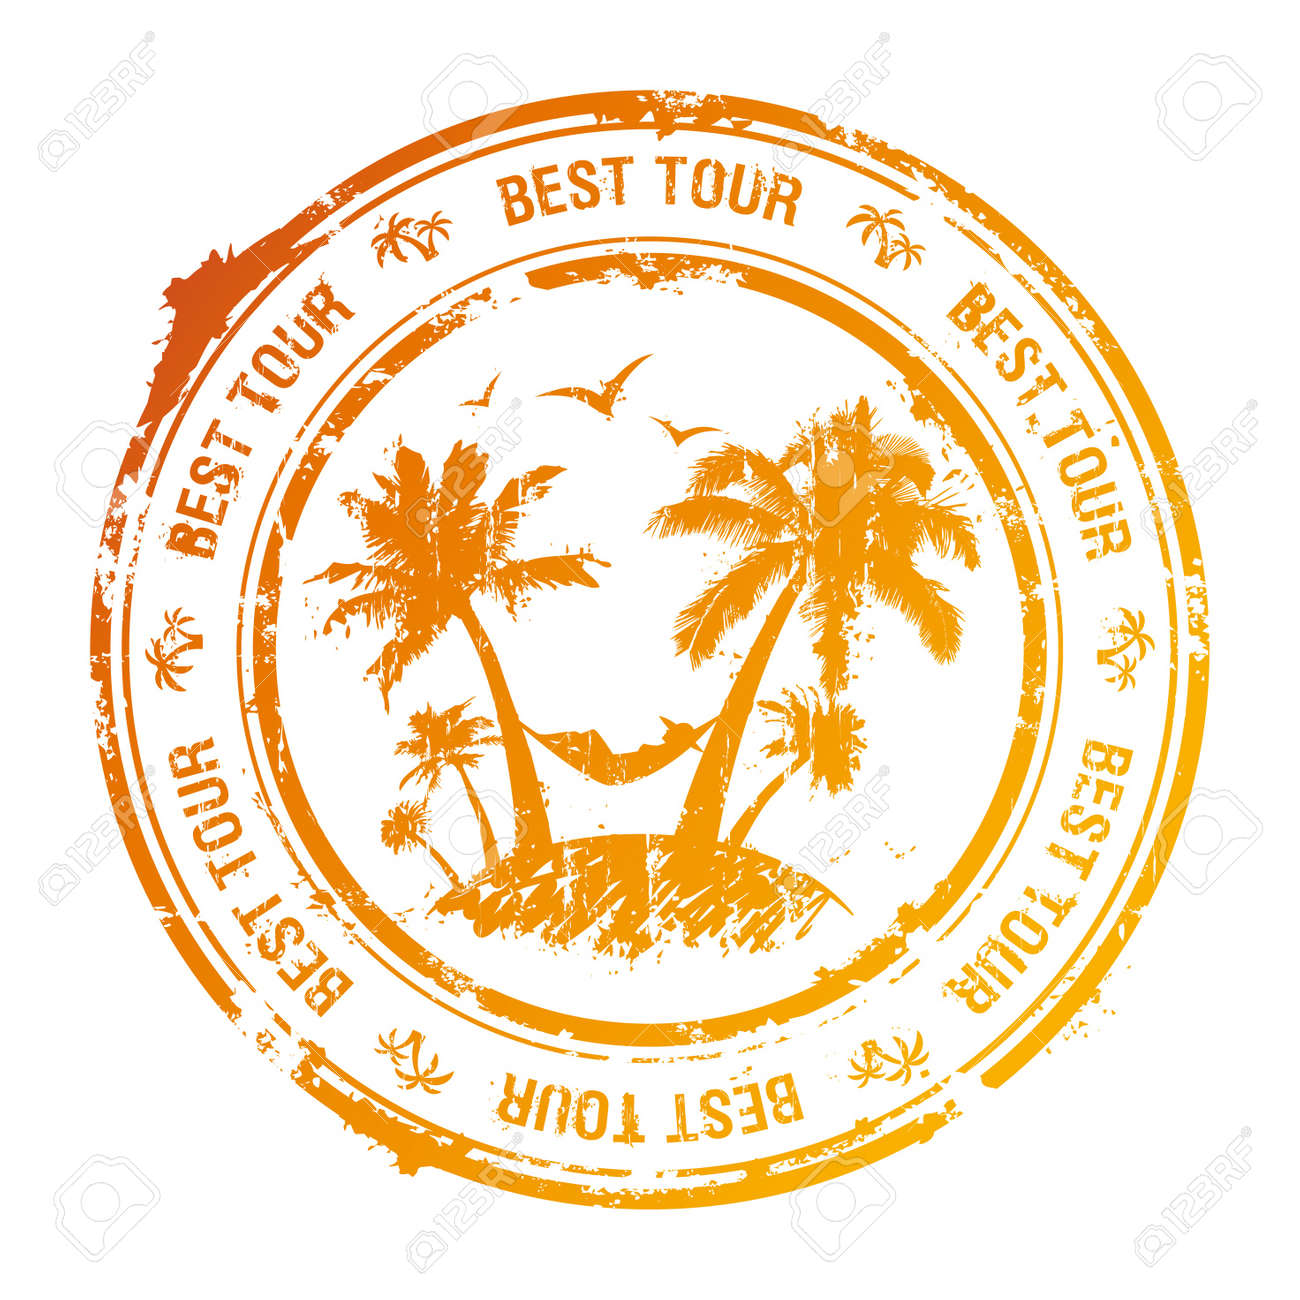 Best tour rubber stamp with tropical view Stock Vector - 14035109